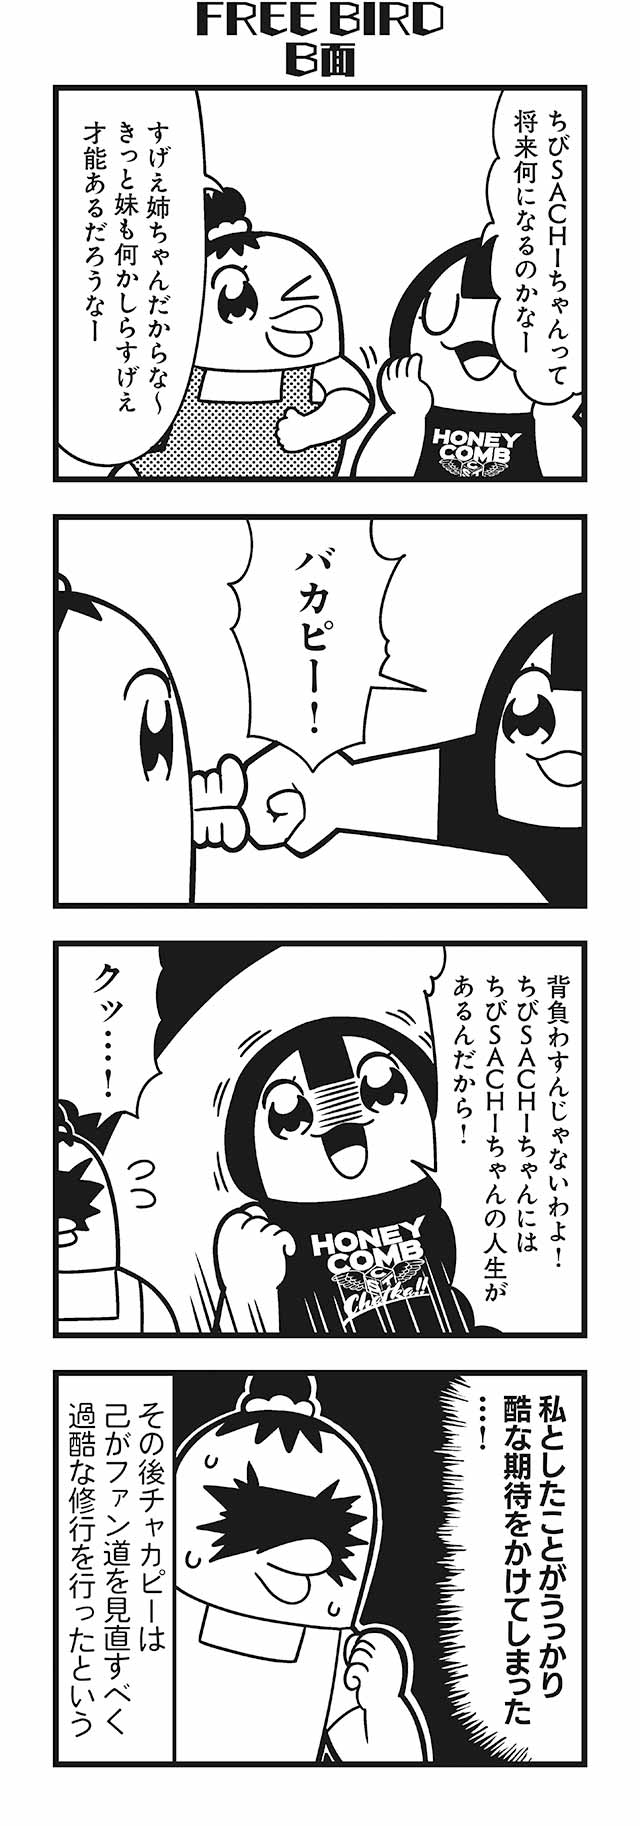 2girls 4koma :3 bangs bkub blunt_bangs calimero_(bkub) chakapi clenched_hand closed_eyes comic flying_sweatdrops greyscale hair_ornament hair_scrunchie halftone hands_on_own_face highres honey_come_chatka!! monochrome motion_lines multiple_girls one_eye_closed open_mouth punching scrunchie shaded_face shirt short_hair shouting simple_background smile speech_bubble sweatdrop talking topknot translation_request two-tone_background